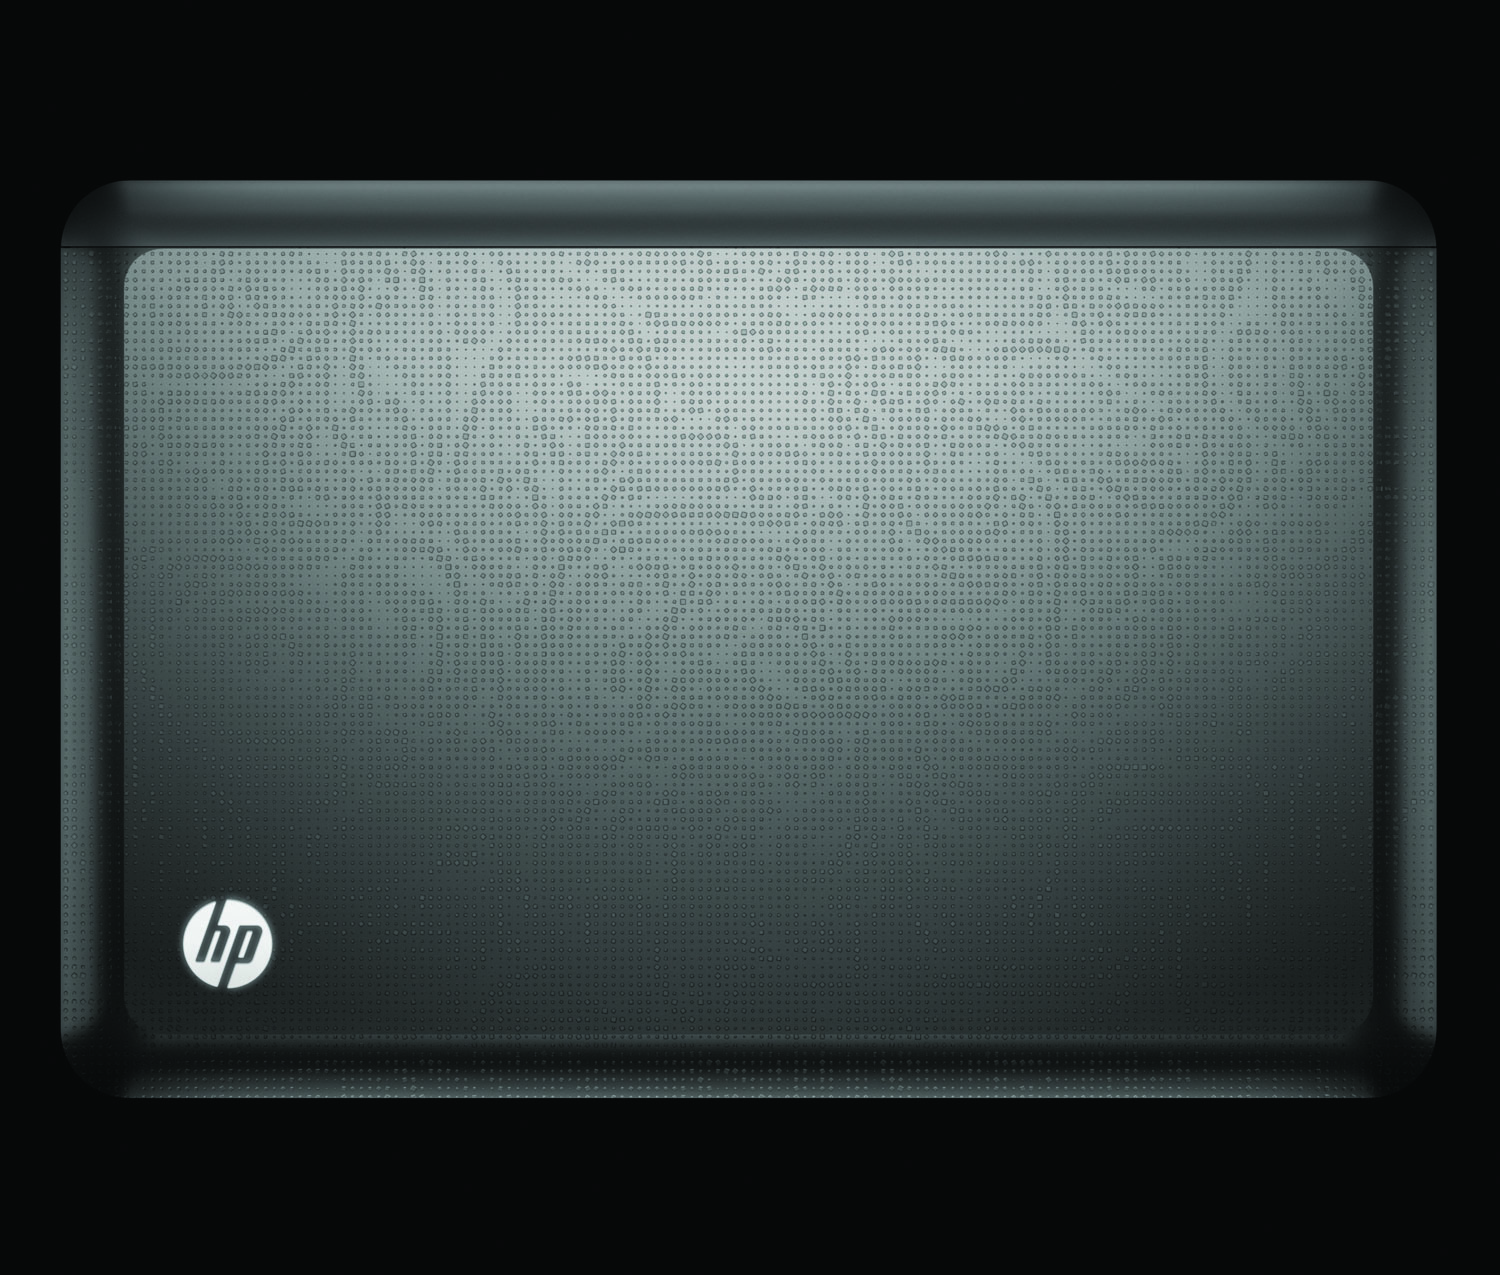 HP Envy 14, top closed on black